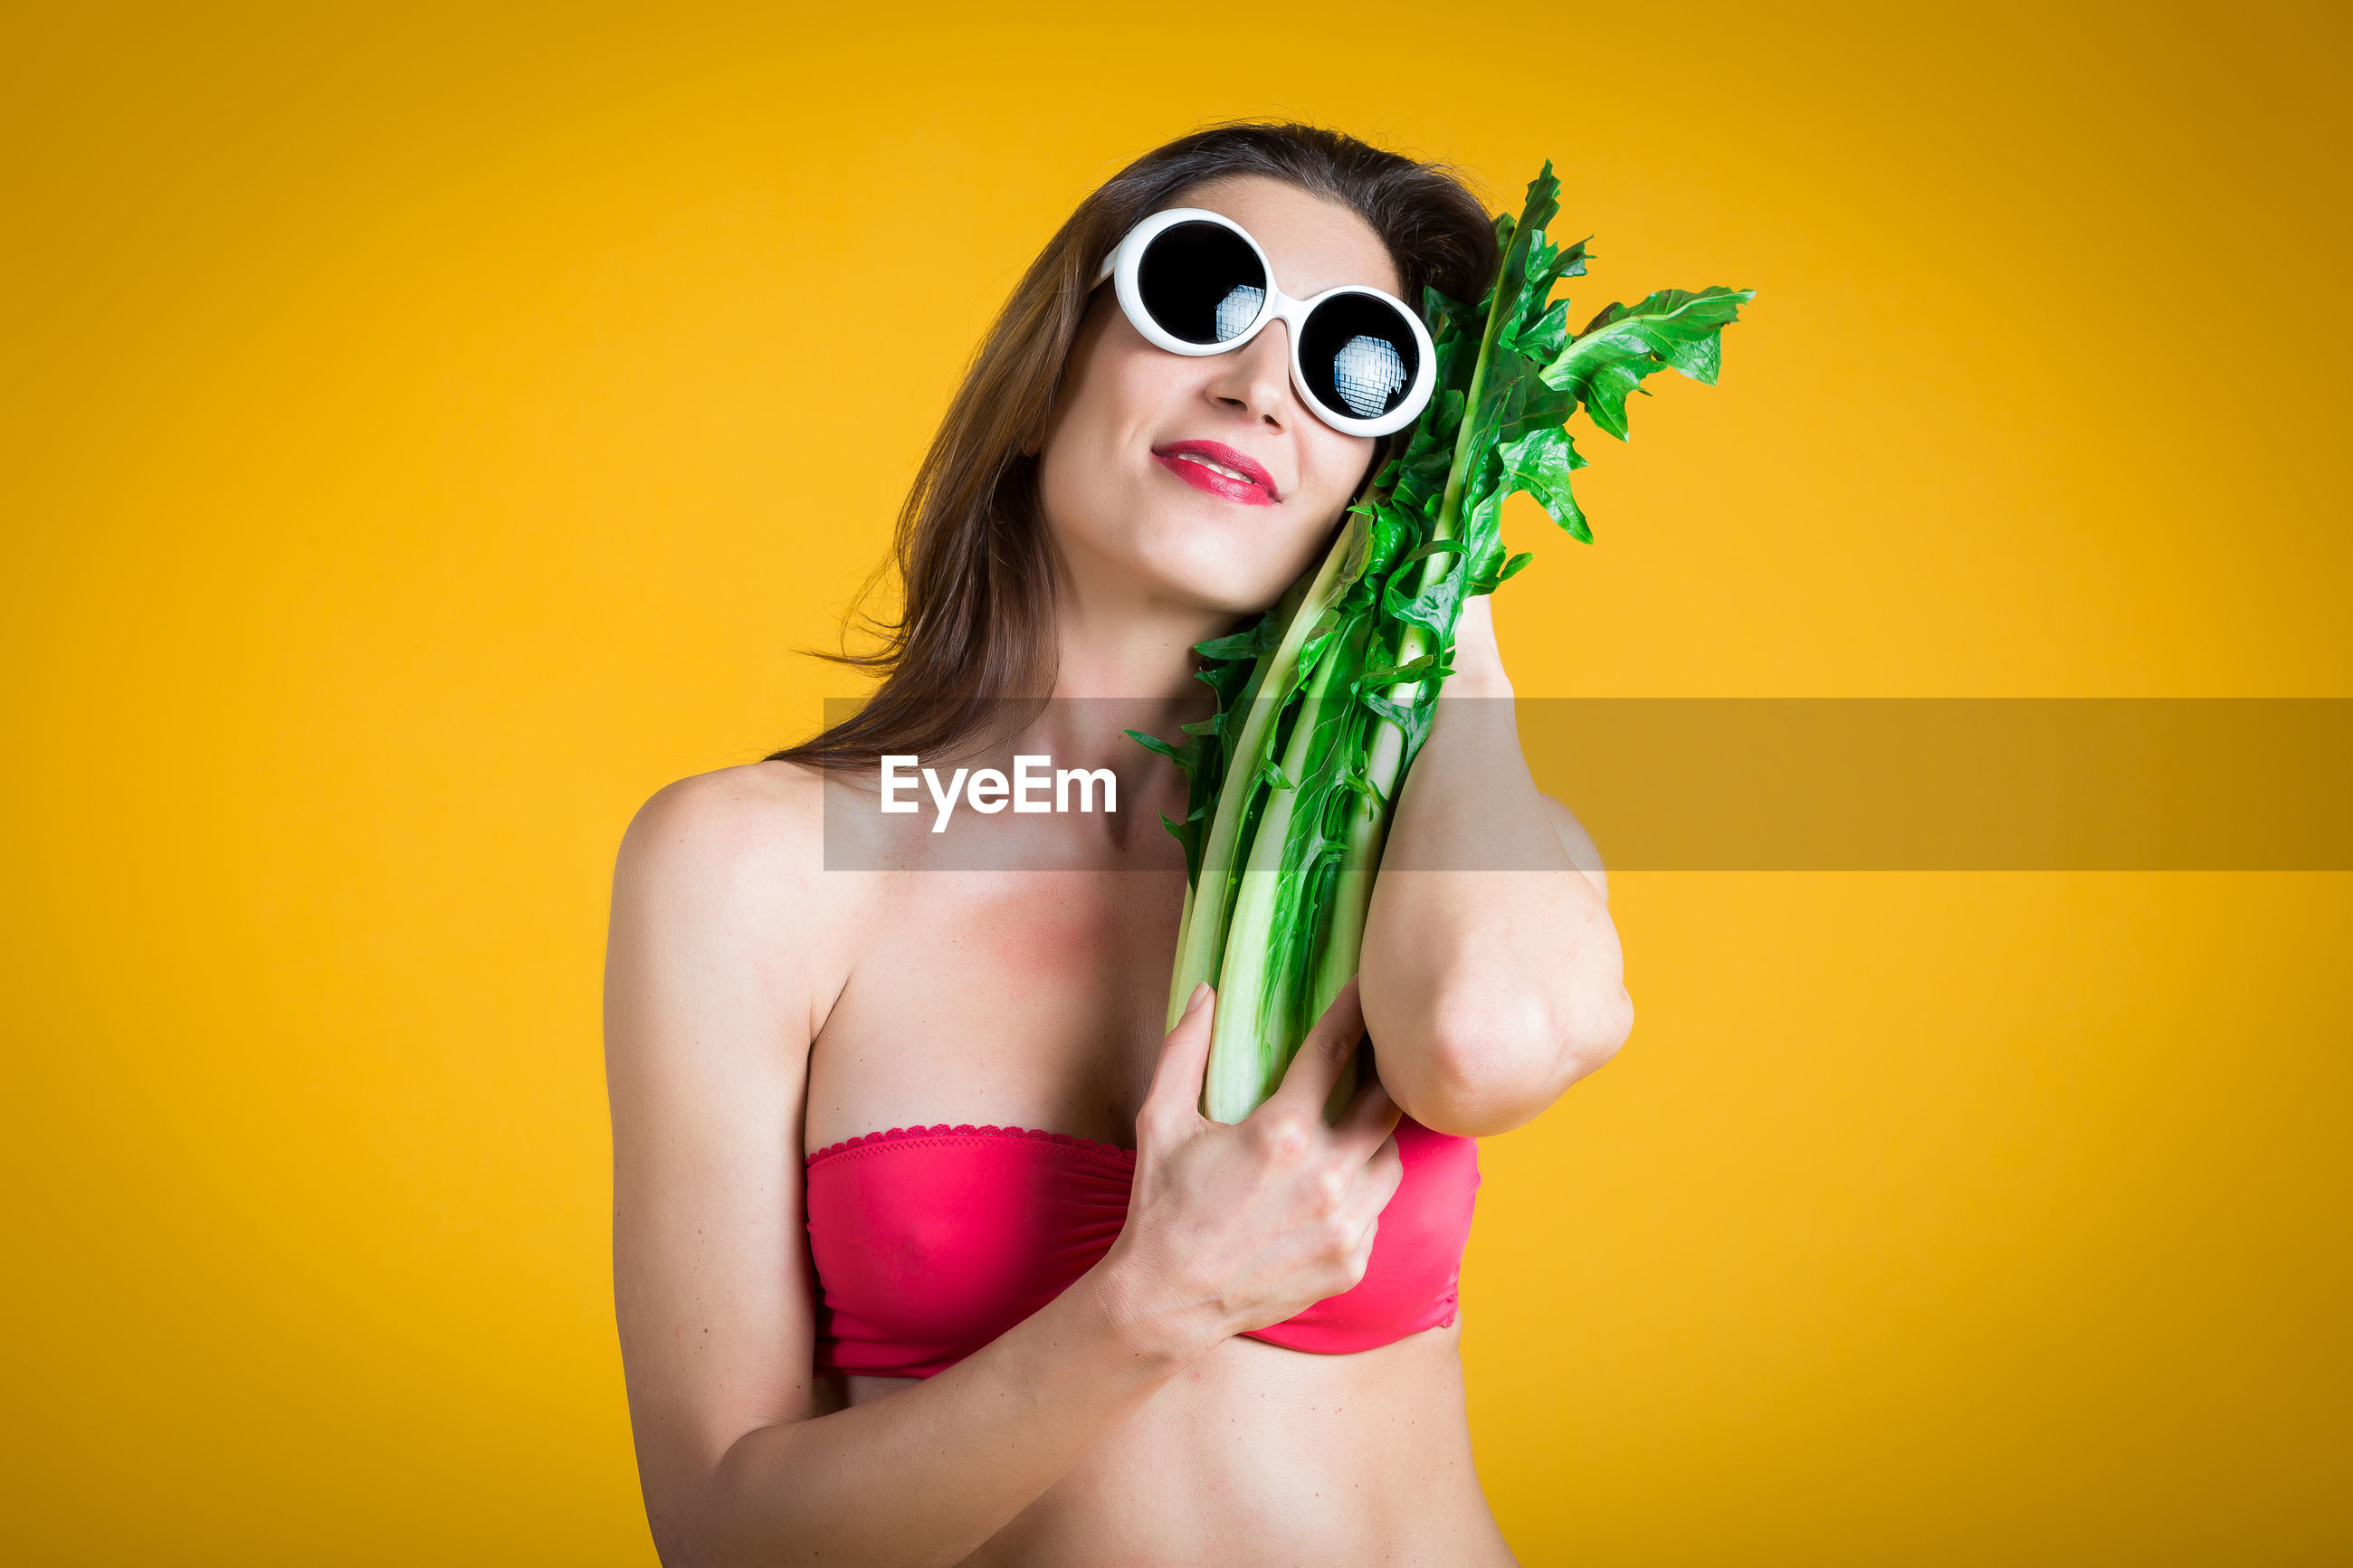 Woman holding vegetable against yellow background